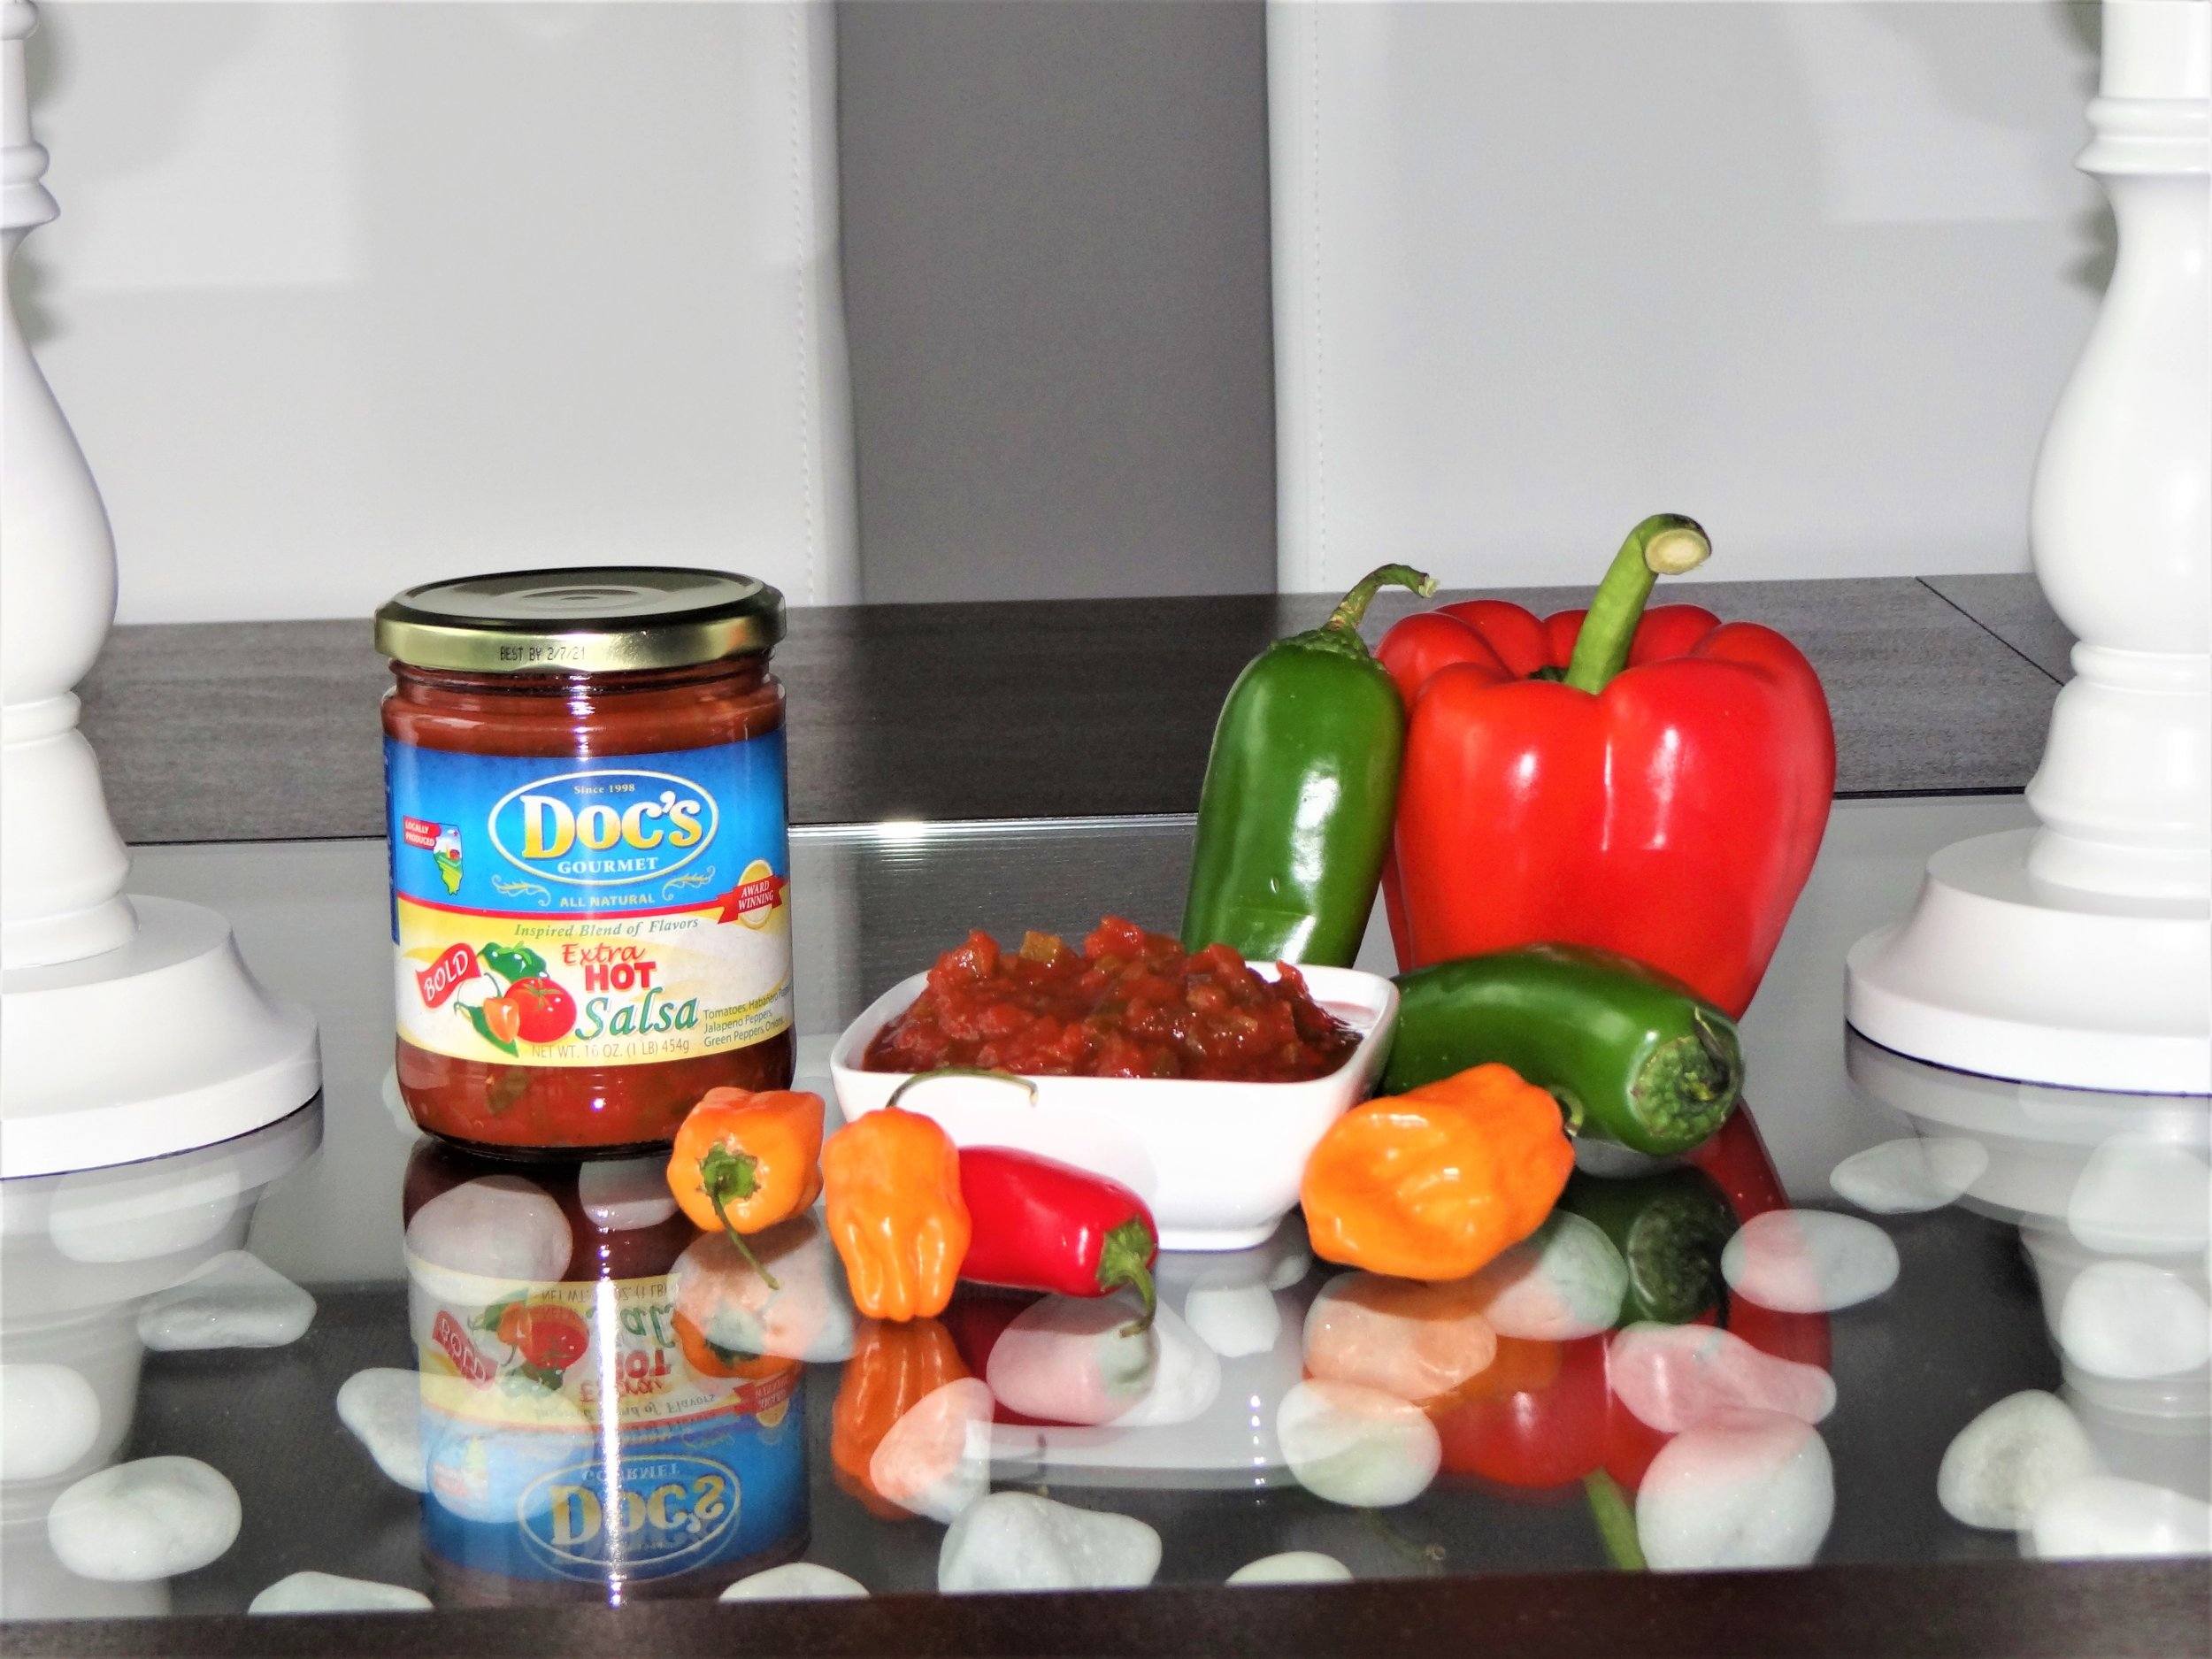 """Doc's Extra Hot Salsa - Consider it the """"hottest"""" sibling in the bunch.With the addition of habanero peppers to the already spicy blend of tomatoes and pepper, this salsa hits your pallet in all the right spots and makes you come back for more.Tip: Use in your favorite chili; and for a totally veggie chili, pair Extra Hot with our Spicy Black Bean Salsa!"""